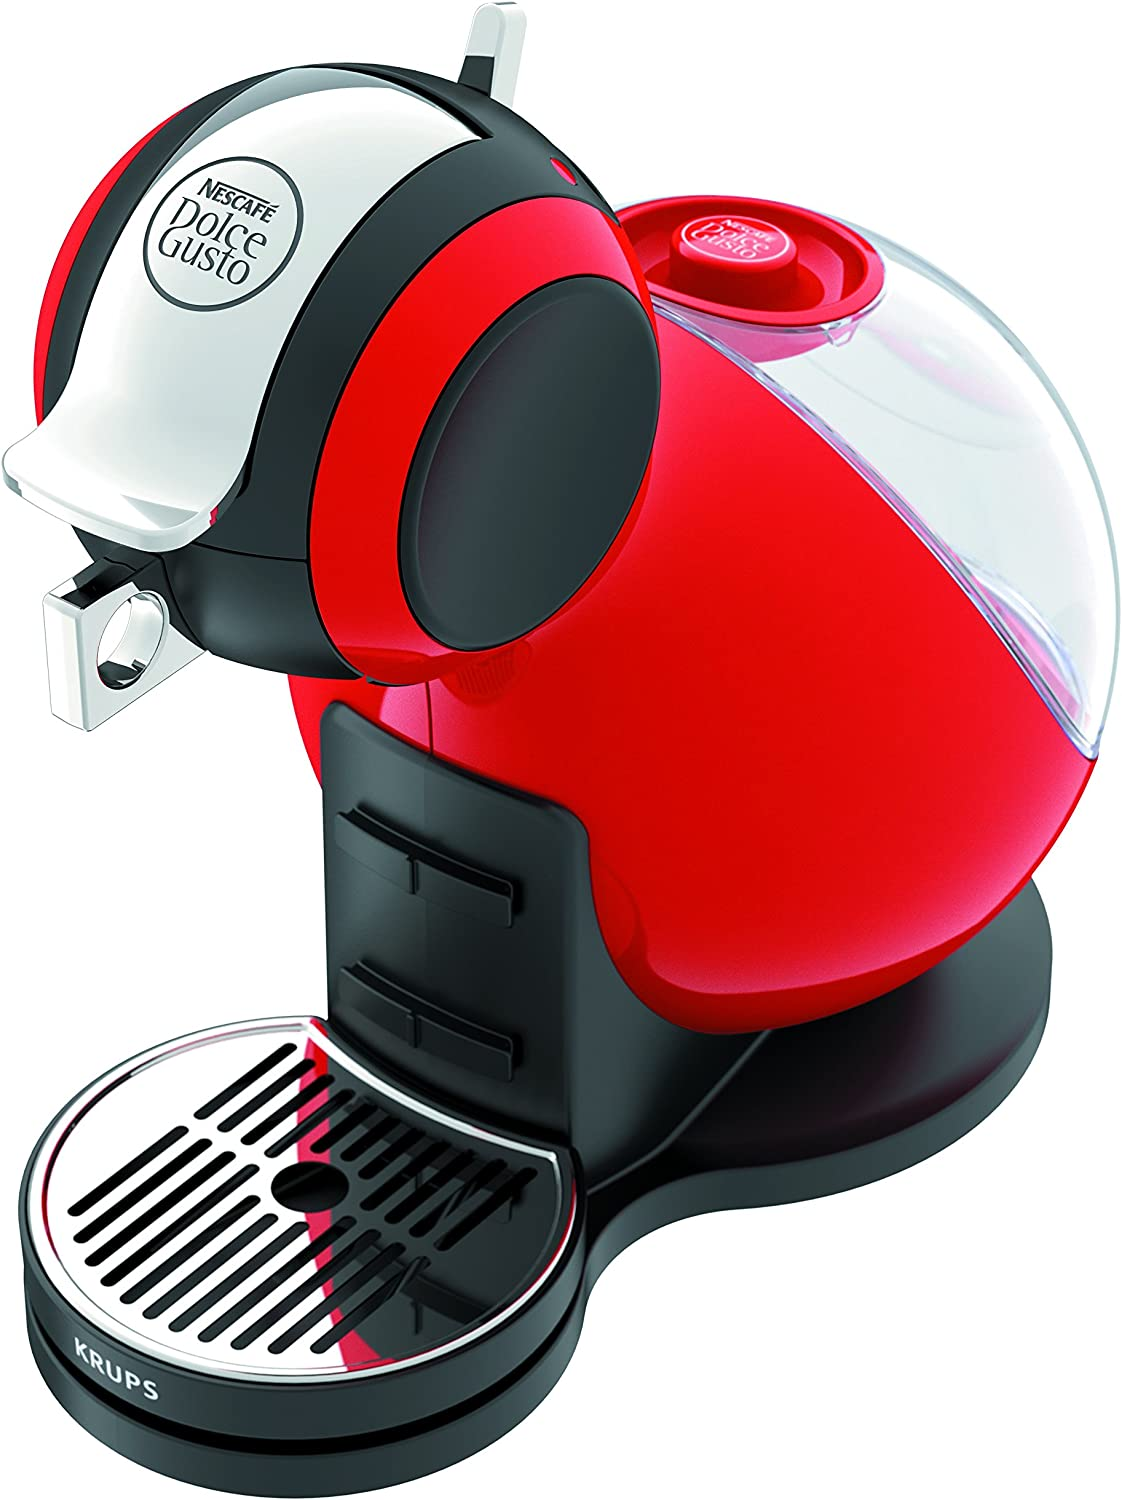 Nescafe Dolce Gusto Melody 3 Coffee Machine - Red